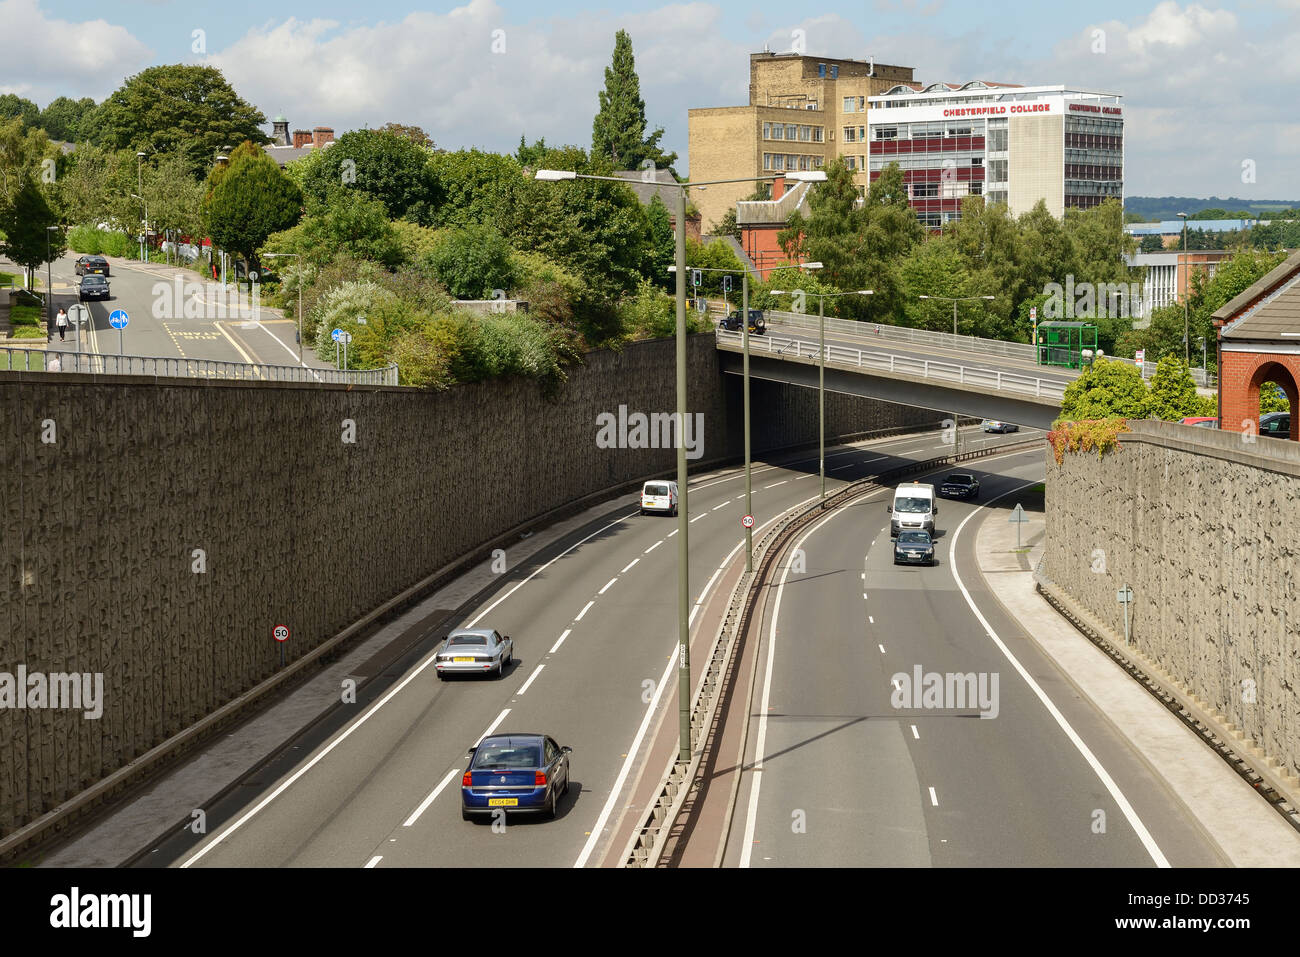 The A61 dual carriageway through Chesterfield with the college building in the background - Stock Image